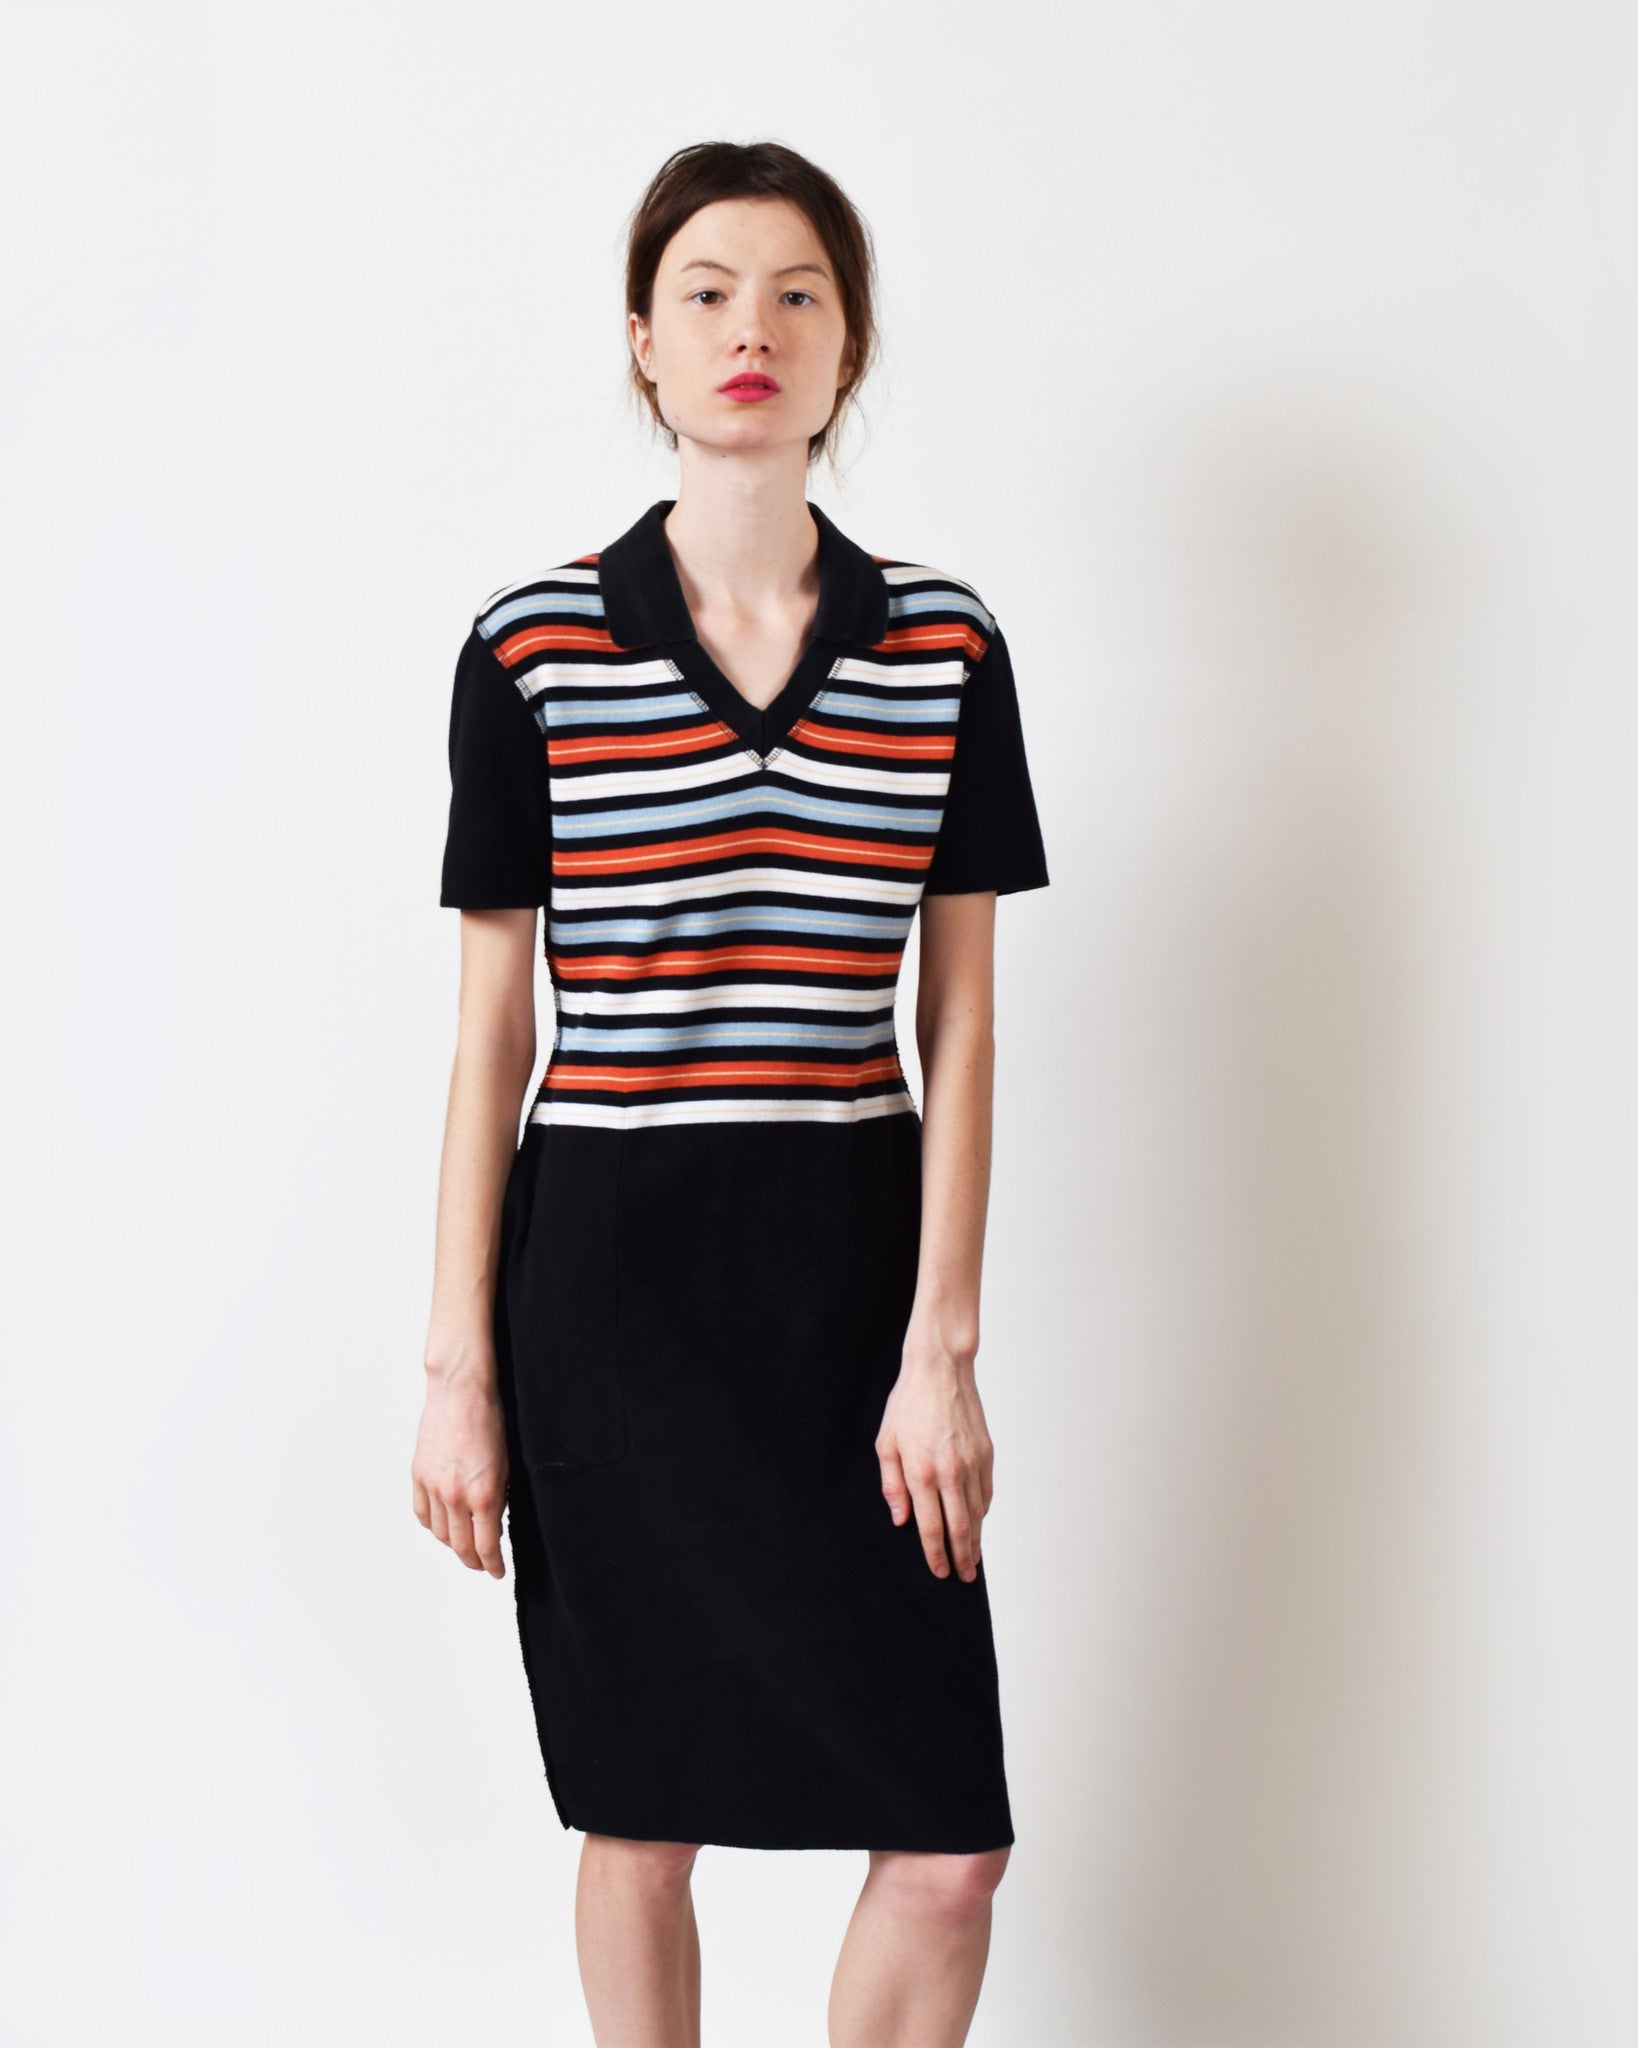 Vintage Sonia Rykiel Polo Dress